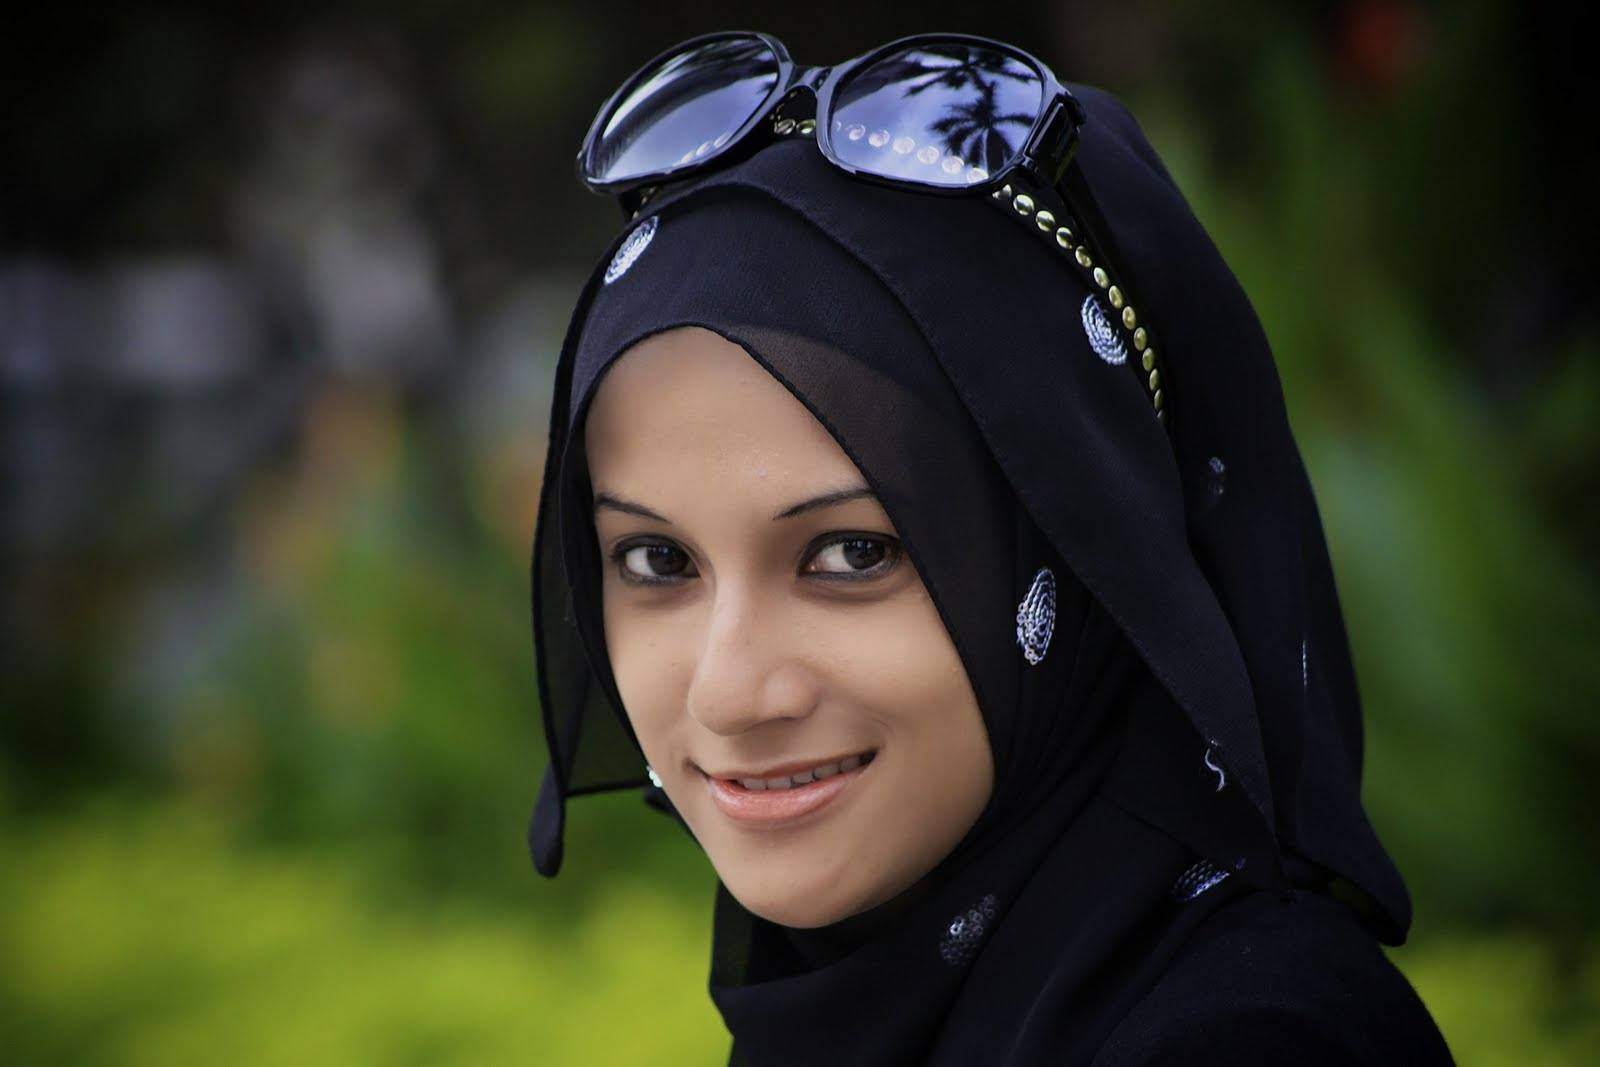 tionesta single muslim girls World's best 100% free muslim online dating site meet loads of available single muslim women on mingle2's dating services find a muslim girlfriend, or just have fun flirting online with single muslim girls.